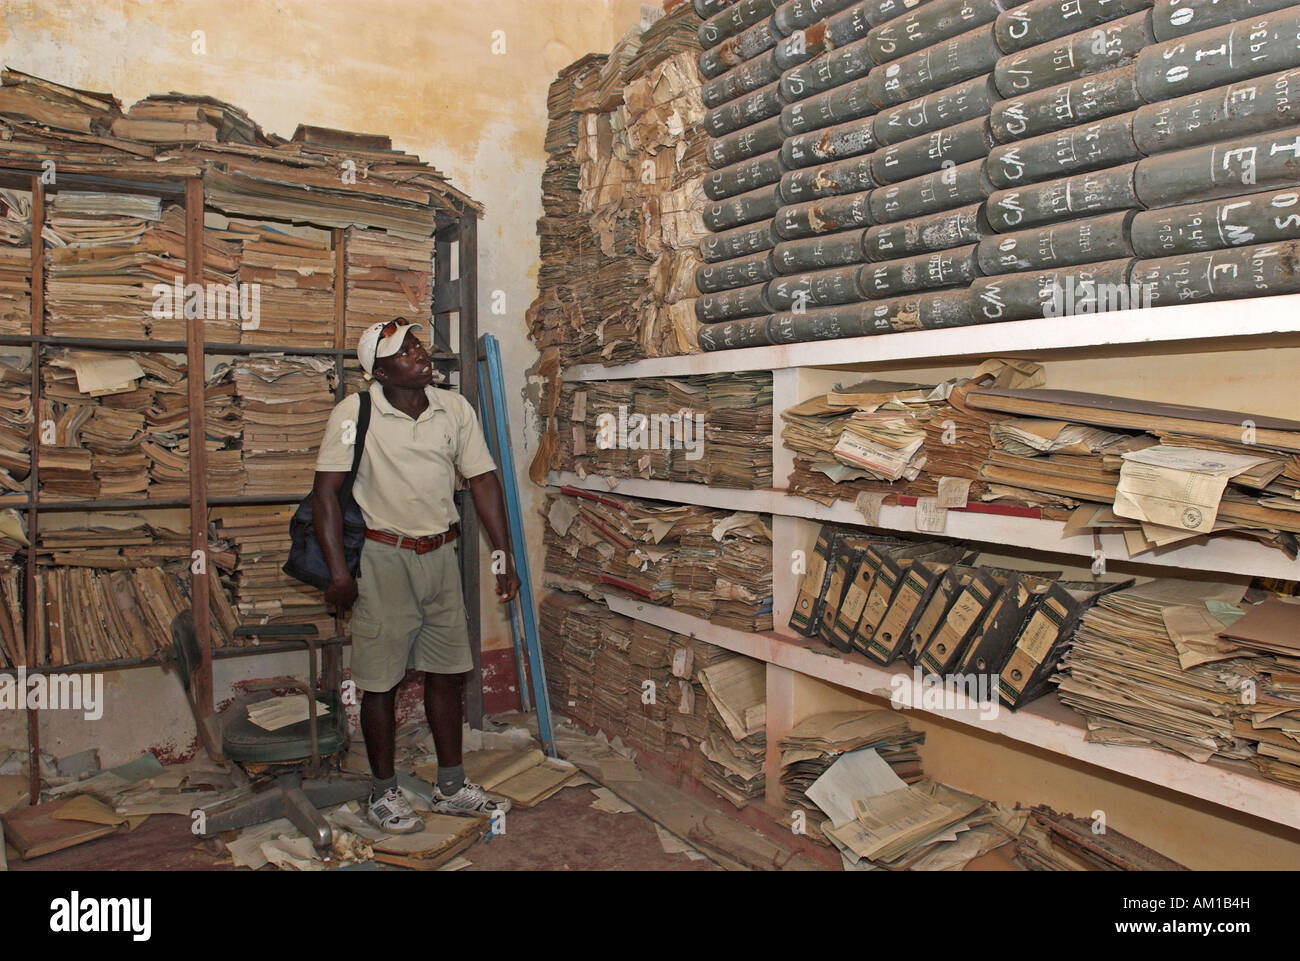 Archives of Ibo Island, Quirimbas islands, Mozambique, Africa - Stock Image